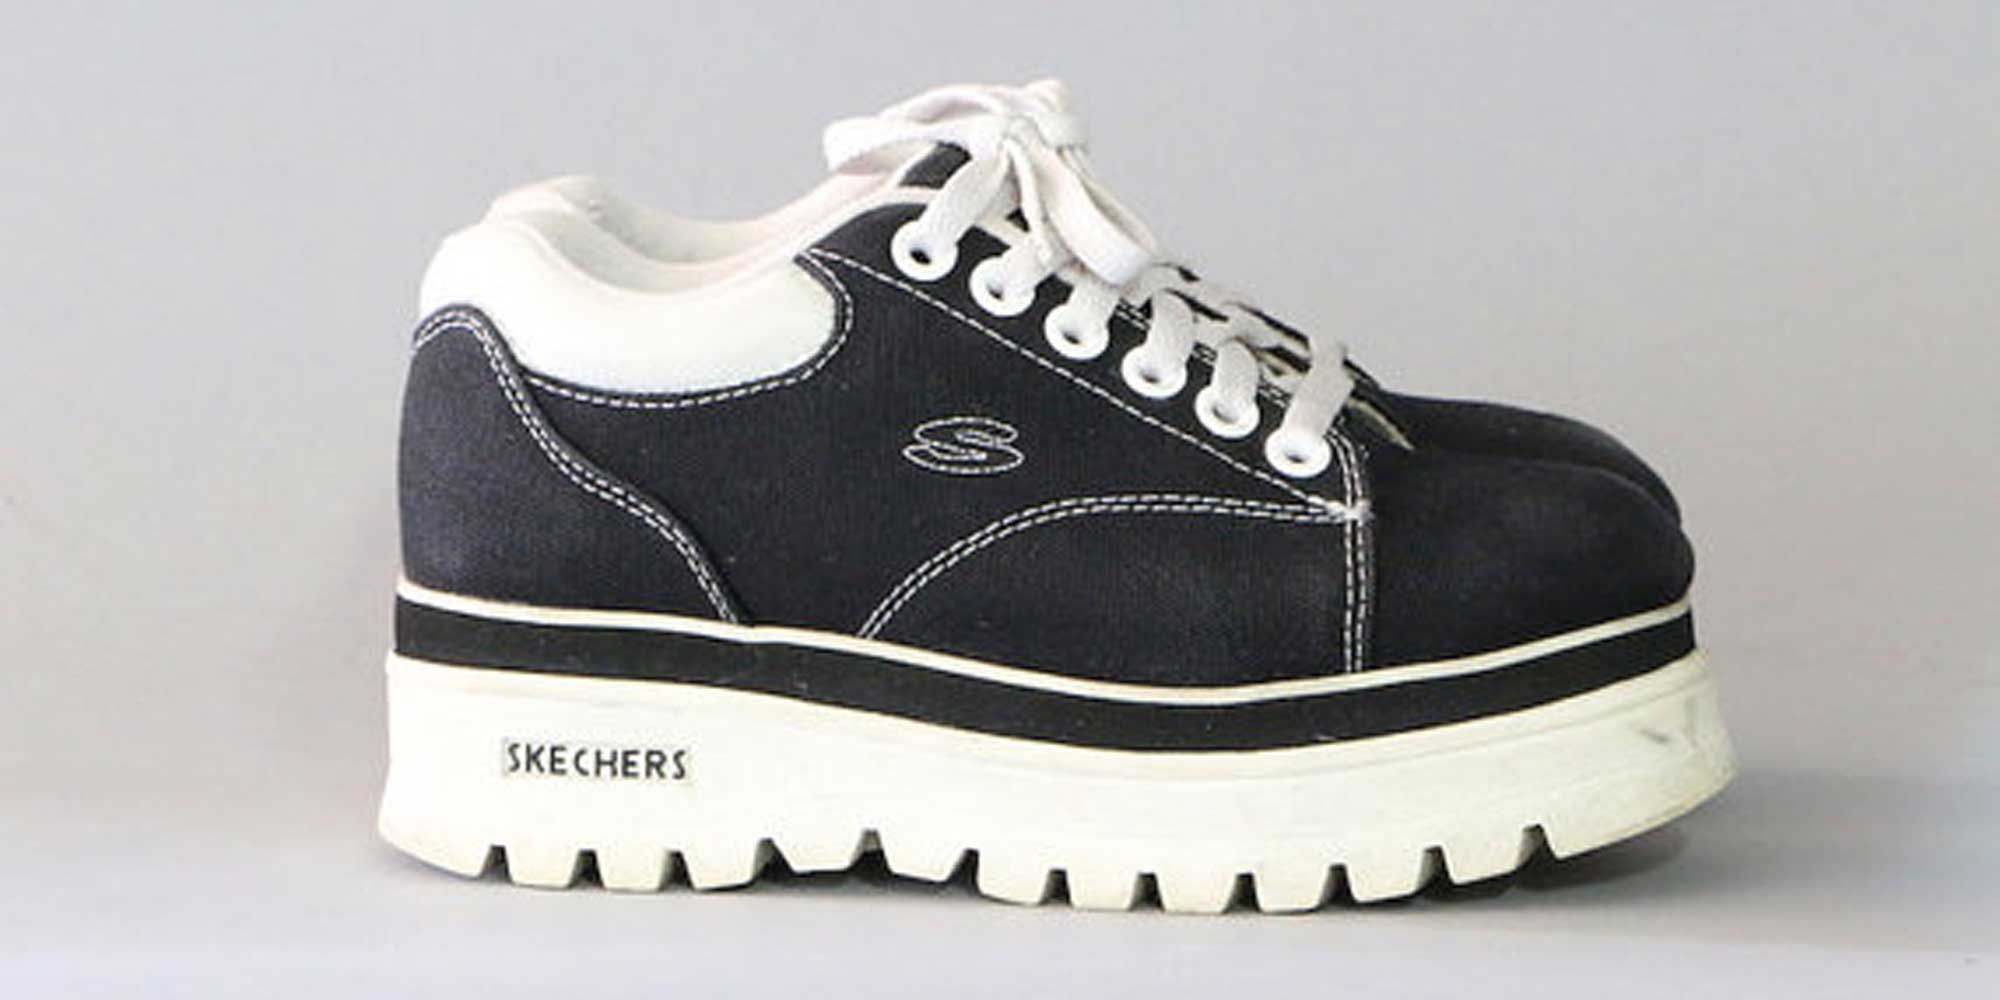 9f0569033b4 Skechers Platforms. So cool in the day! I d wear these now if I could!